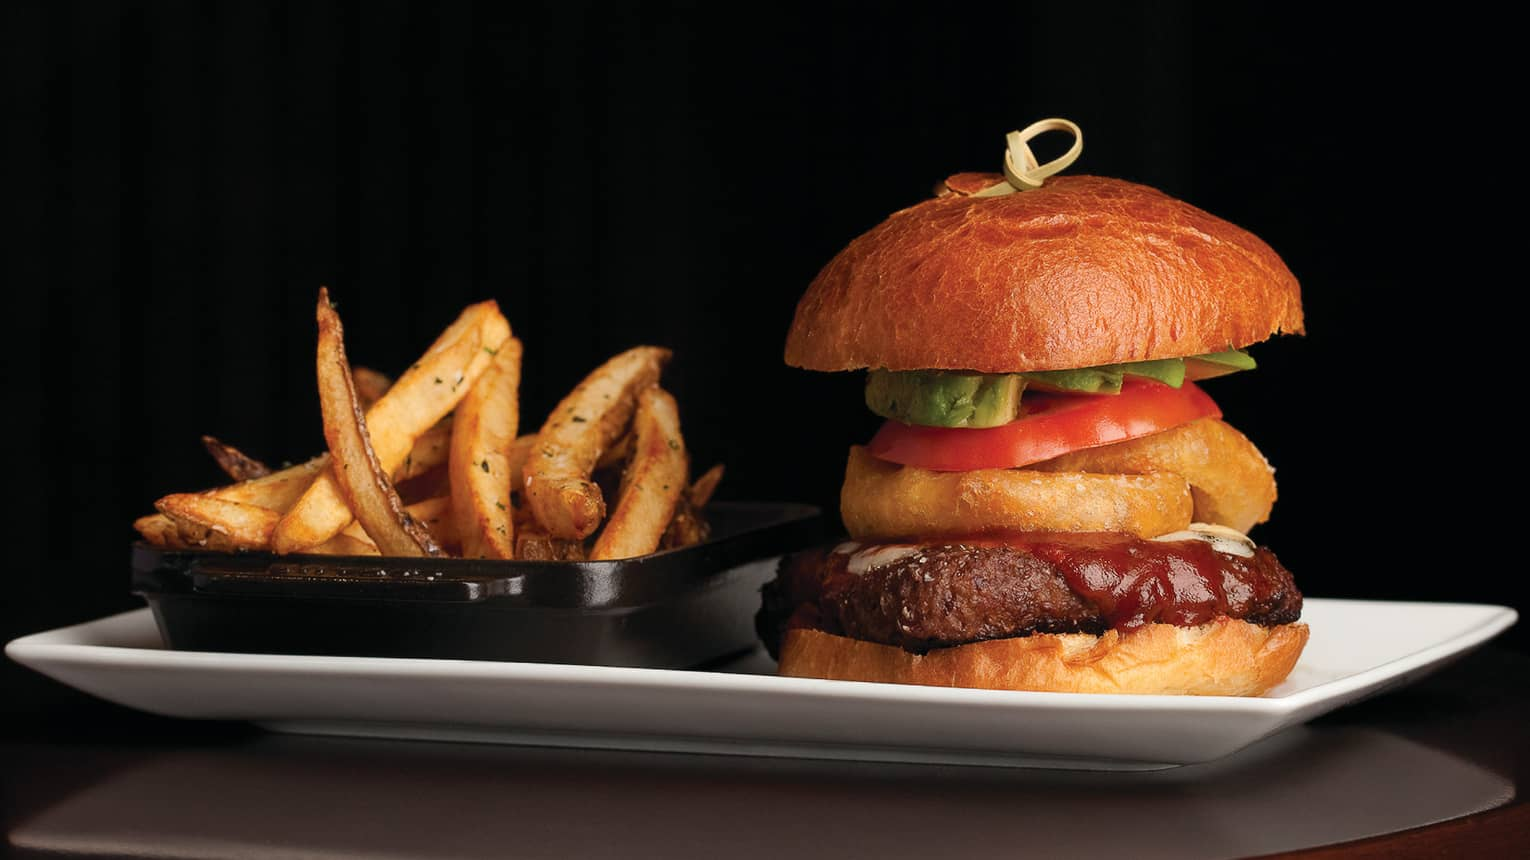 Thick bison burger with onion rings, tomato, lettuce on bun, basket of fries